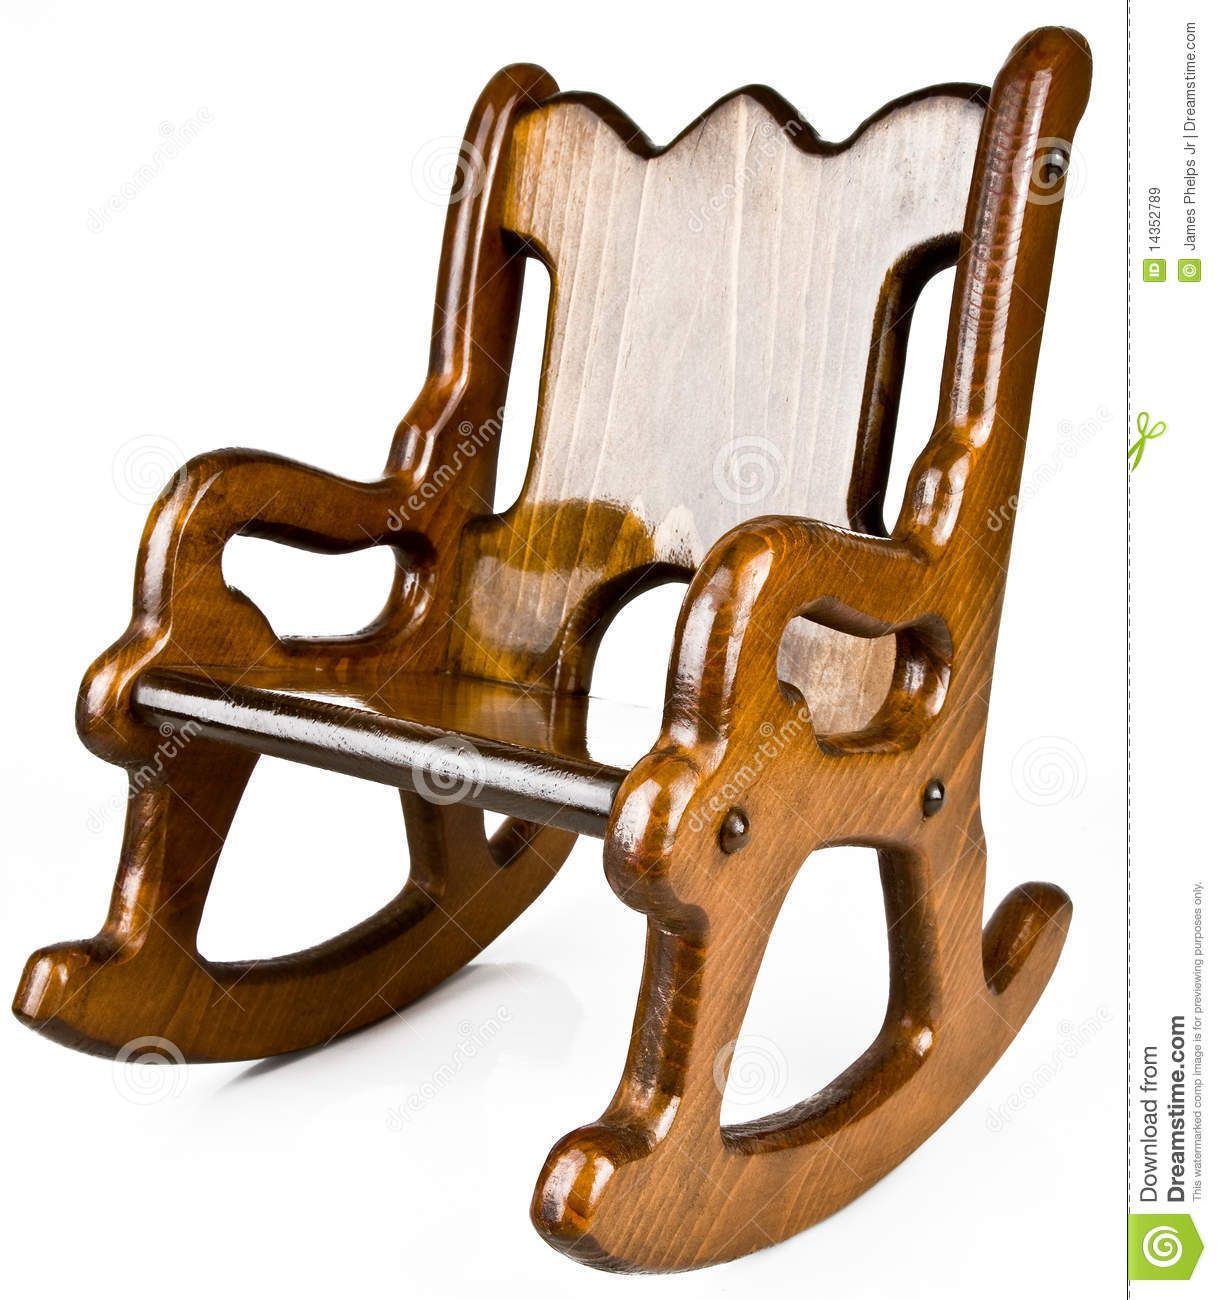 kids wood rocking chair plans  wood  Rocking chair plans